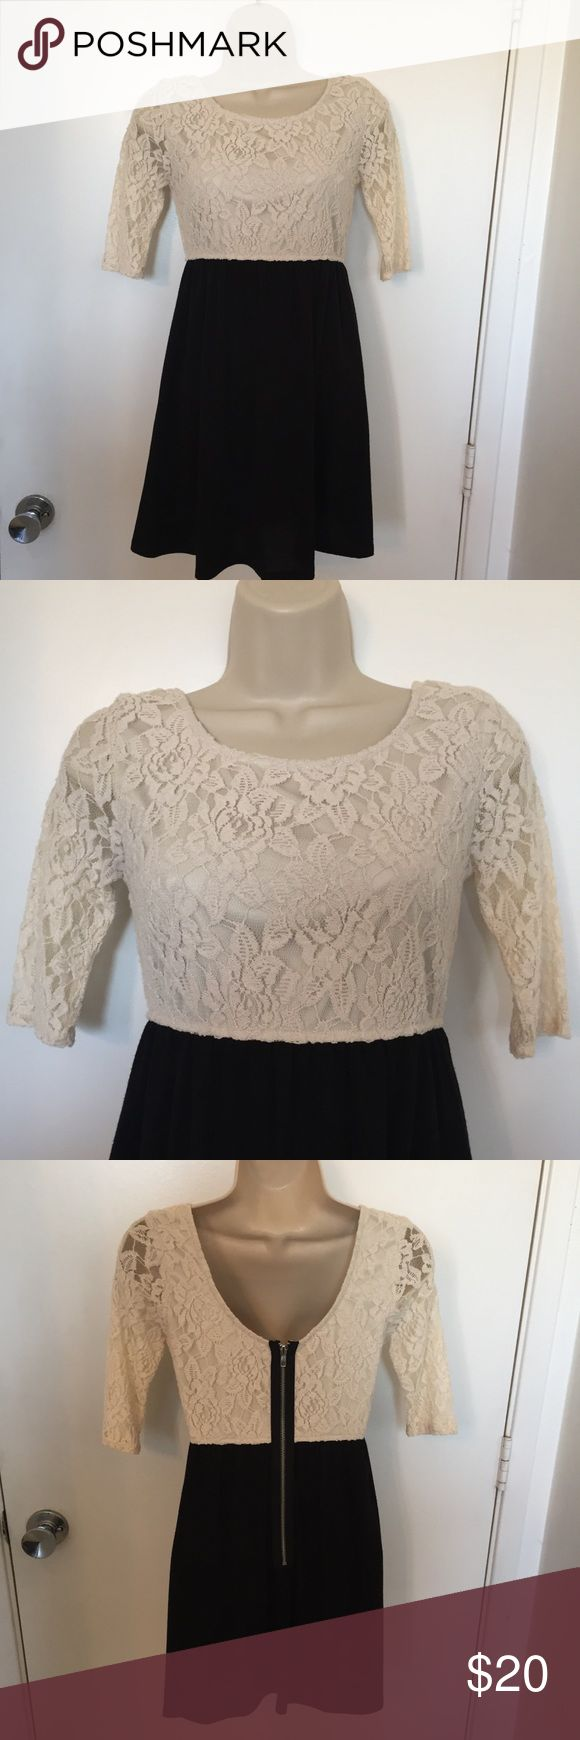 Speeckless mini cream color lace and black dress 3 Cute Speeckless brand black skirt and cream lace 3/4 sleeve and lined bodice top. Zip up back . Great for New Years or just going out at night with booties . Gently used . Speeckless Dresses Mini